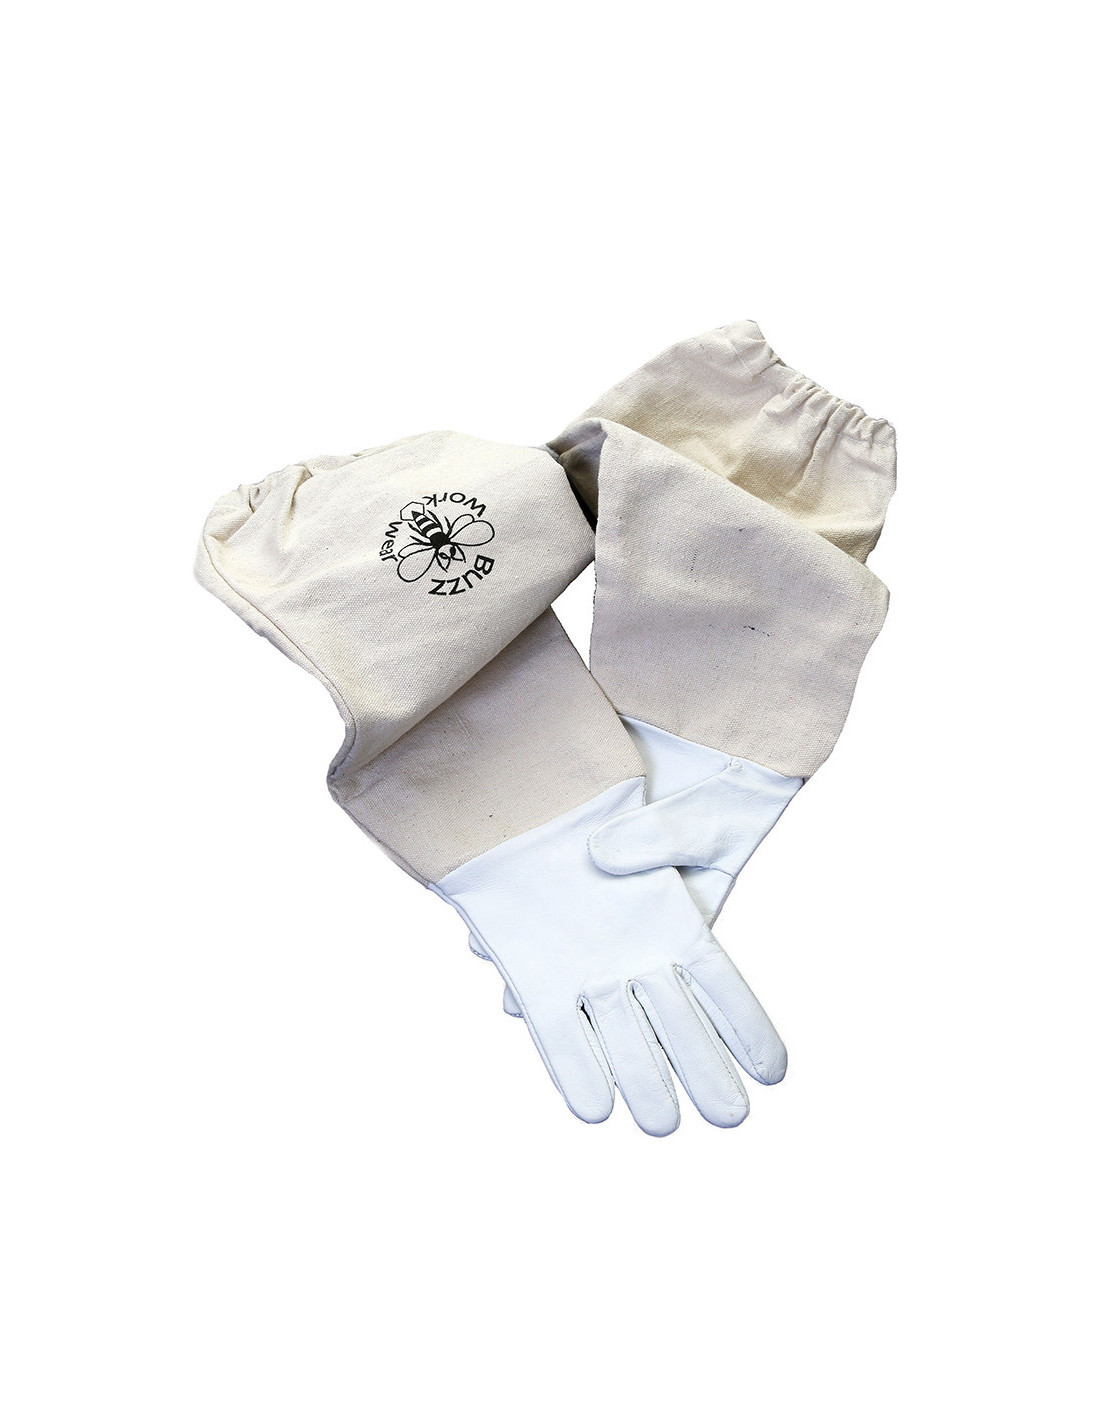 S Buzz Work Wear Beekeepers White Soft Hide Leather Gloves